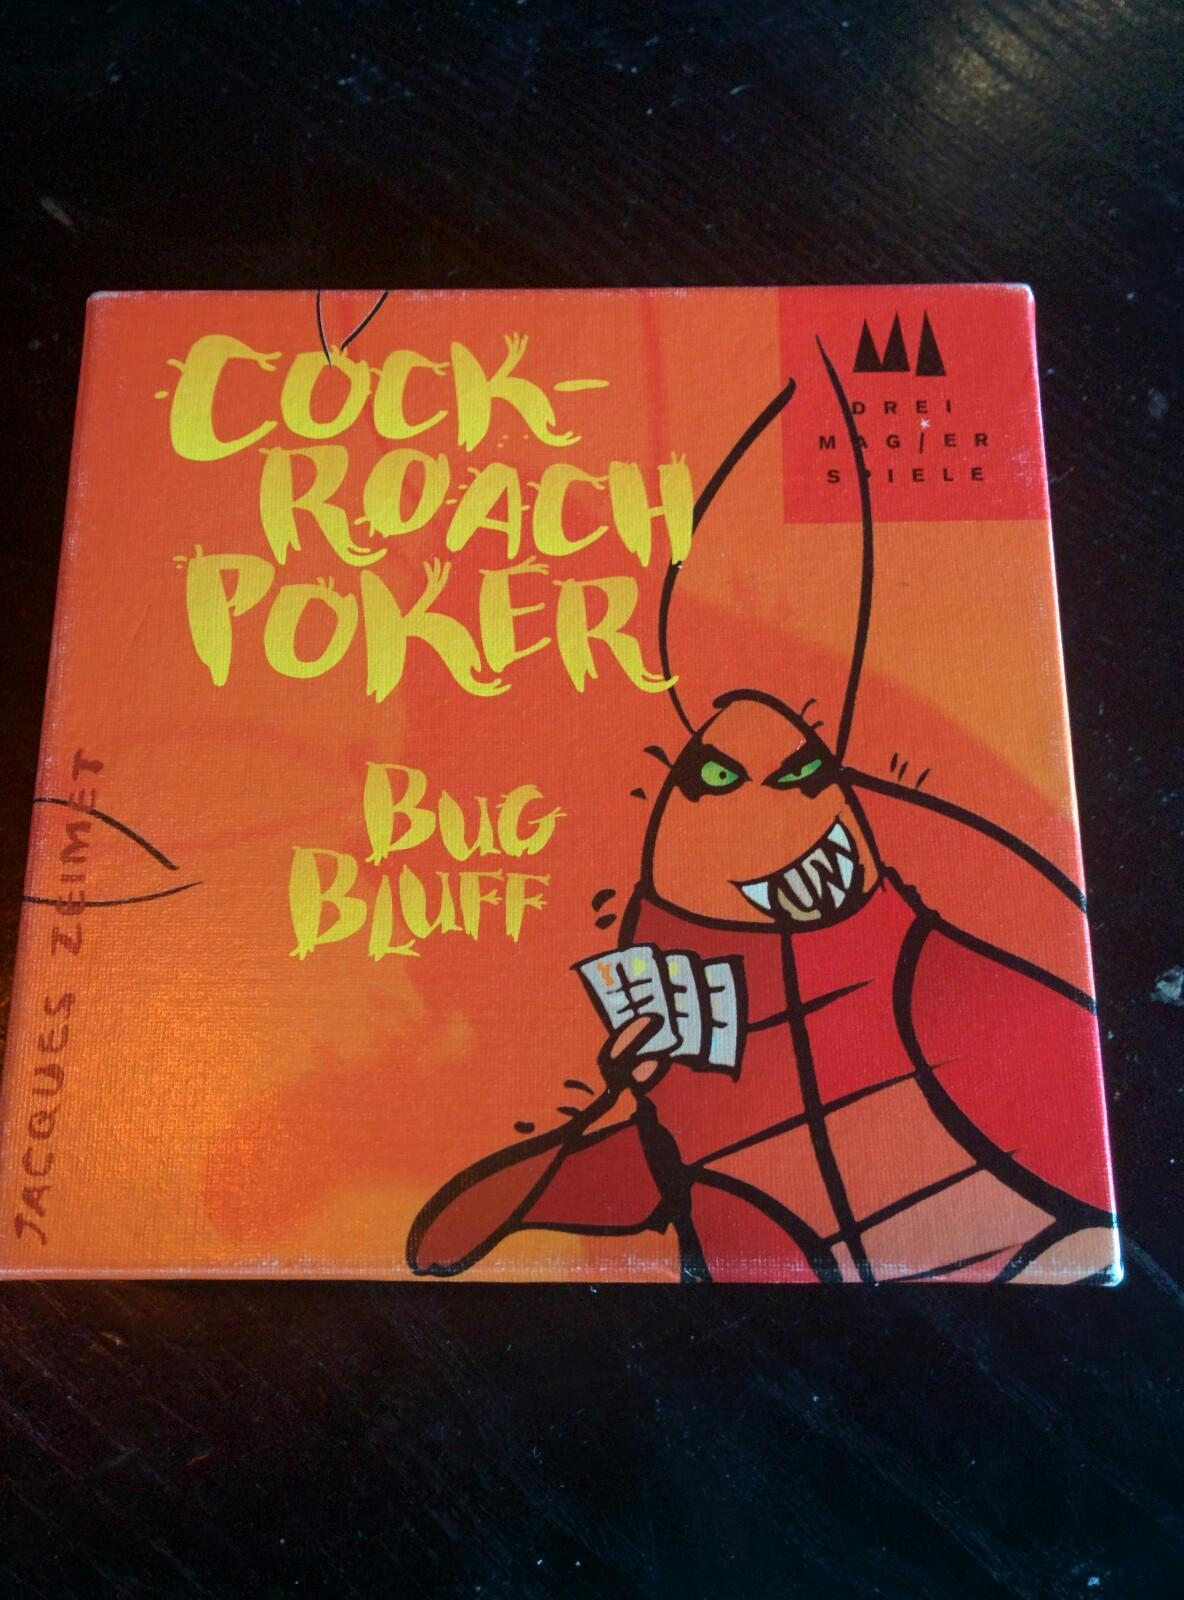 This game, Cockroach Poker, is insanely fun. It's a definite contender for #tabletop season 3. http://t.co/QYMYR1DmgY